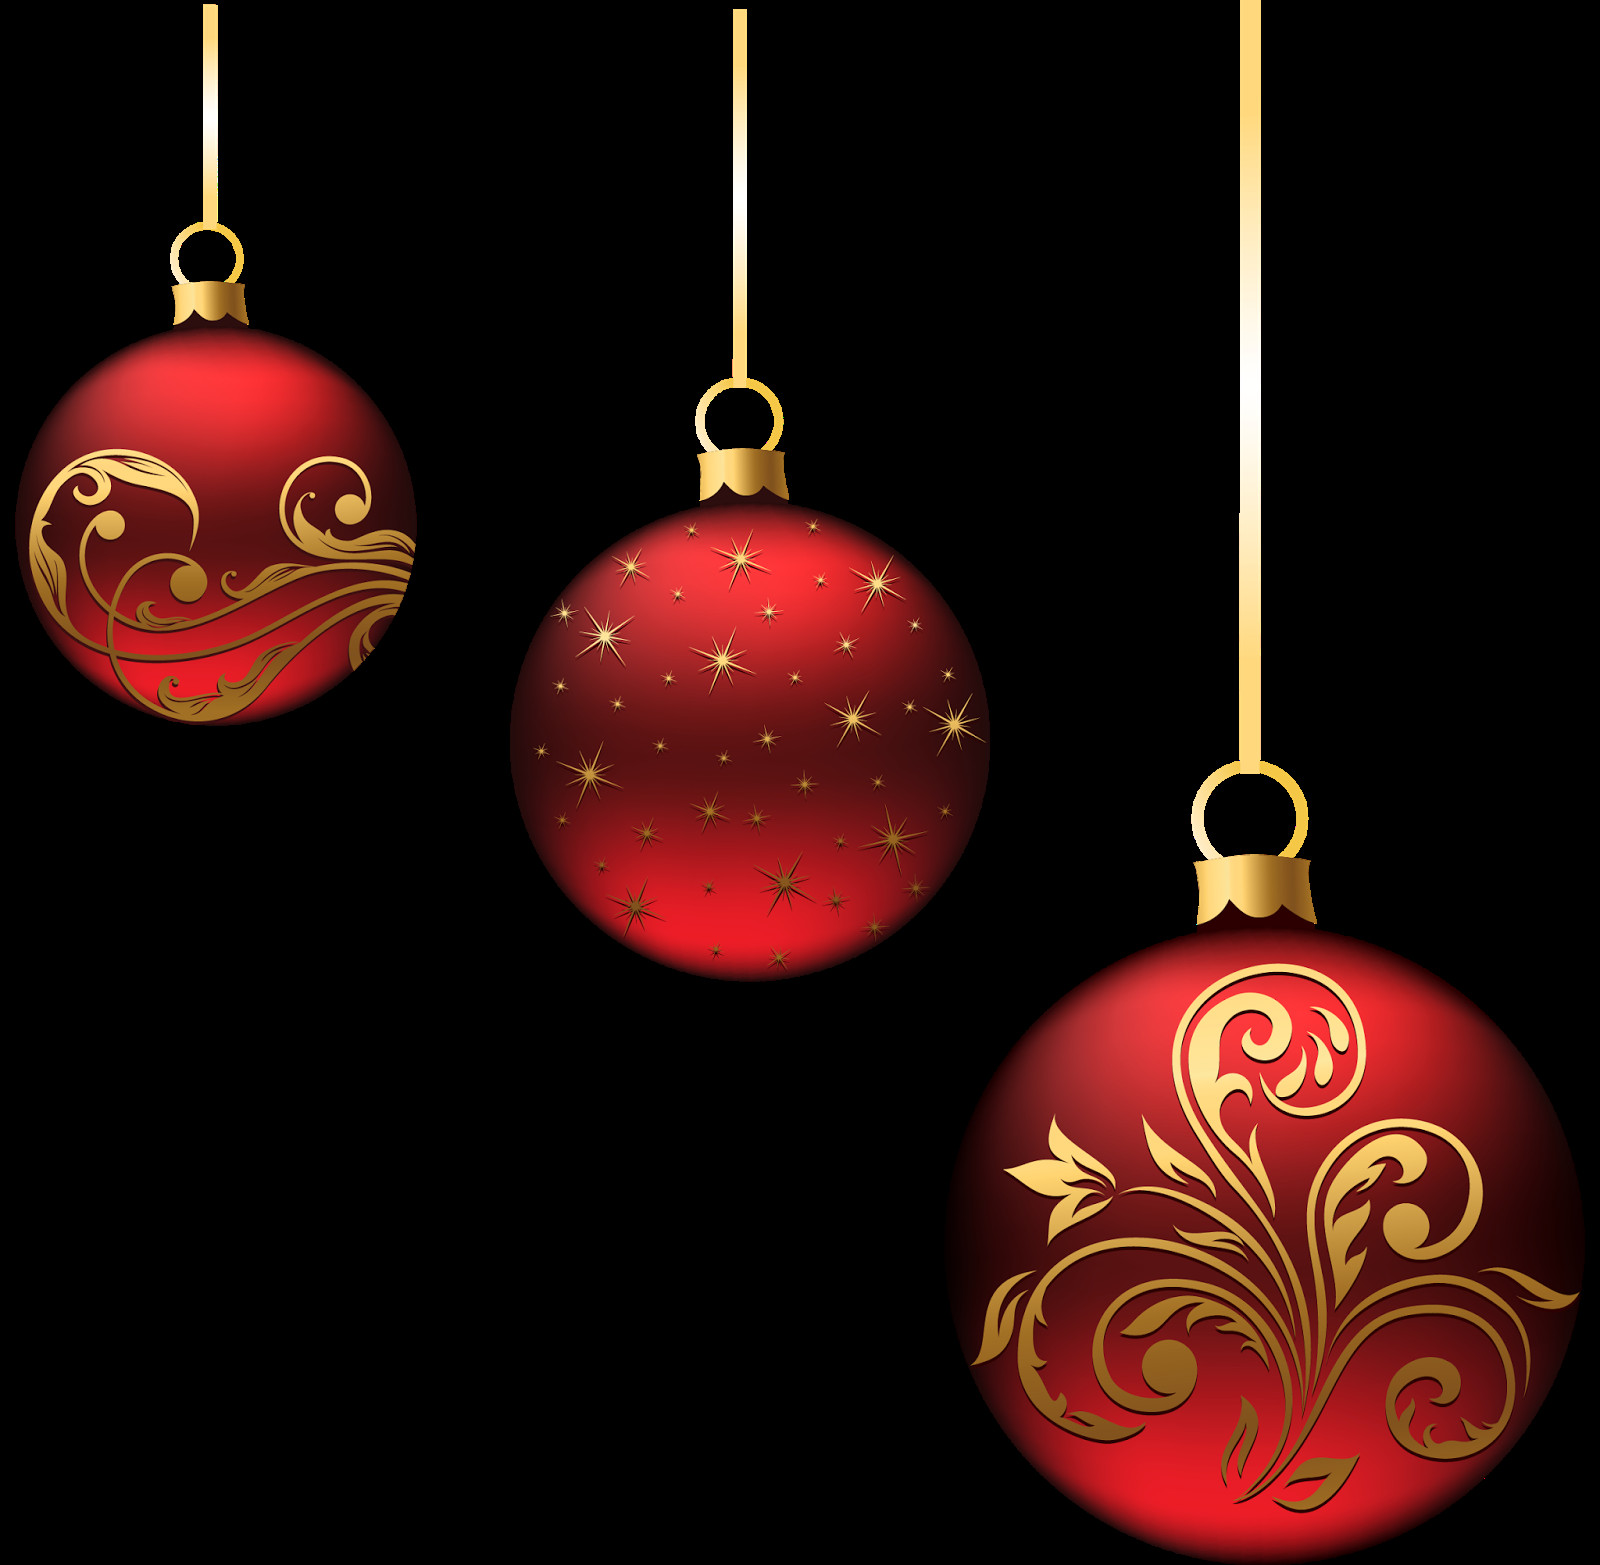 Best Of Christmas Decorations – Happy Holidays Free Christmas Decorations Of Adorable 43 Pics Free Christmas Decorations